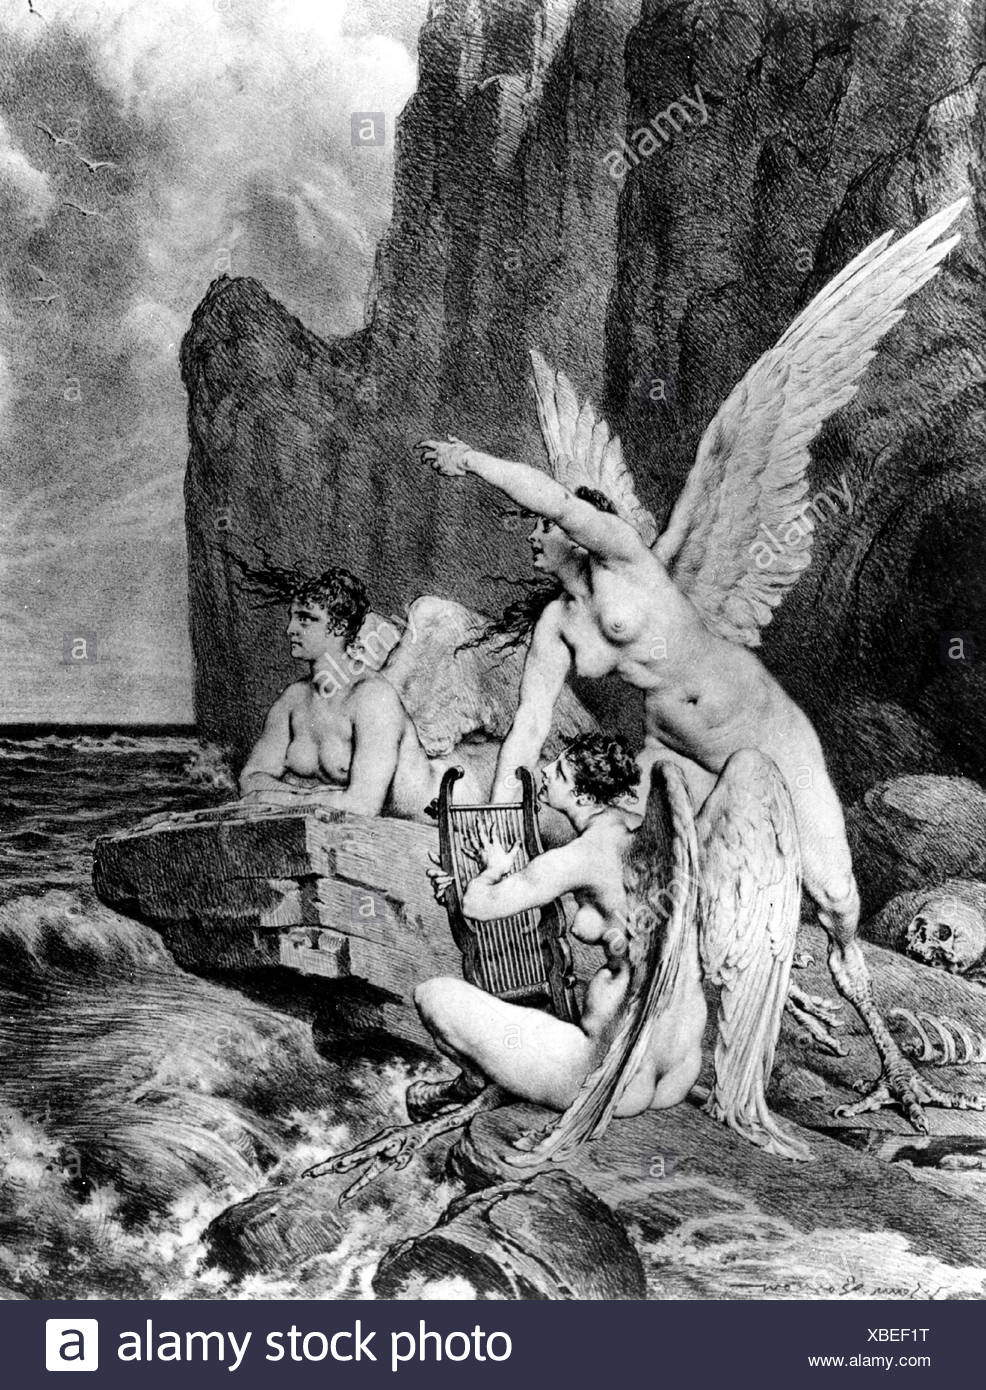 Sirens, Greek mythical creatures, luring seafarers into a trap with their singing, etching by Heinrich Lossow, 19th century, Additional-Rights-Clearances-NA - Stock Image